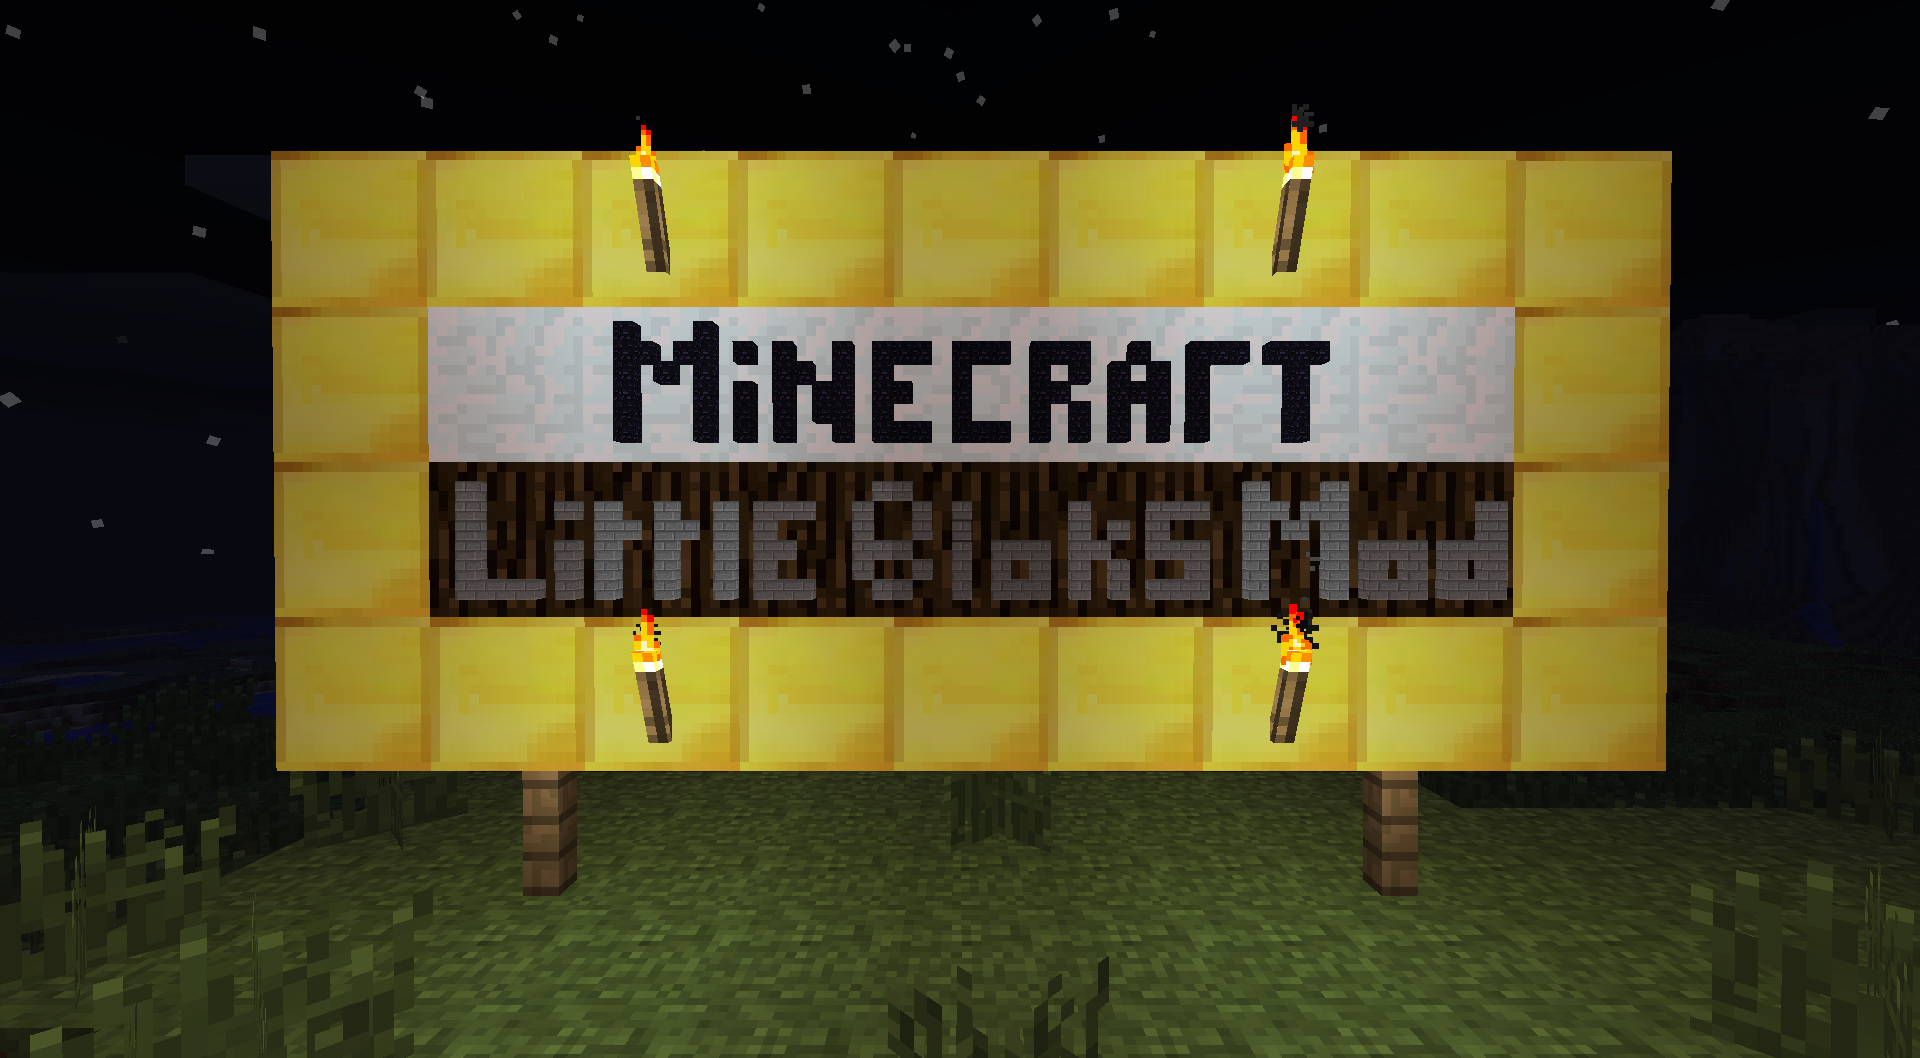 [1.6.2] Little Blocks